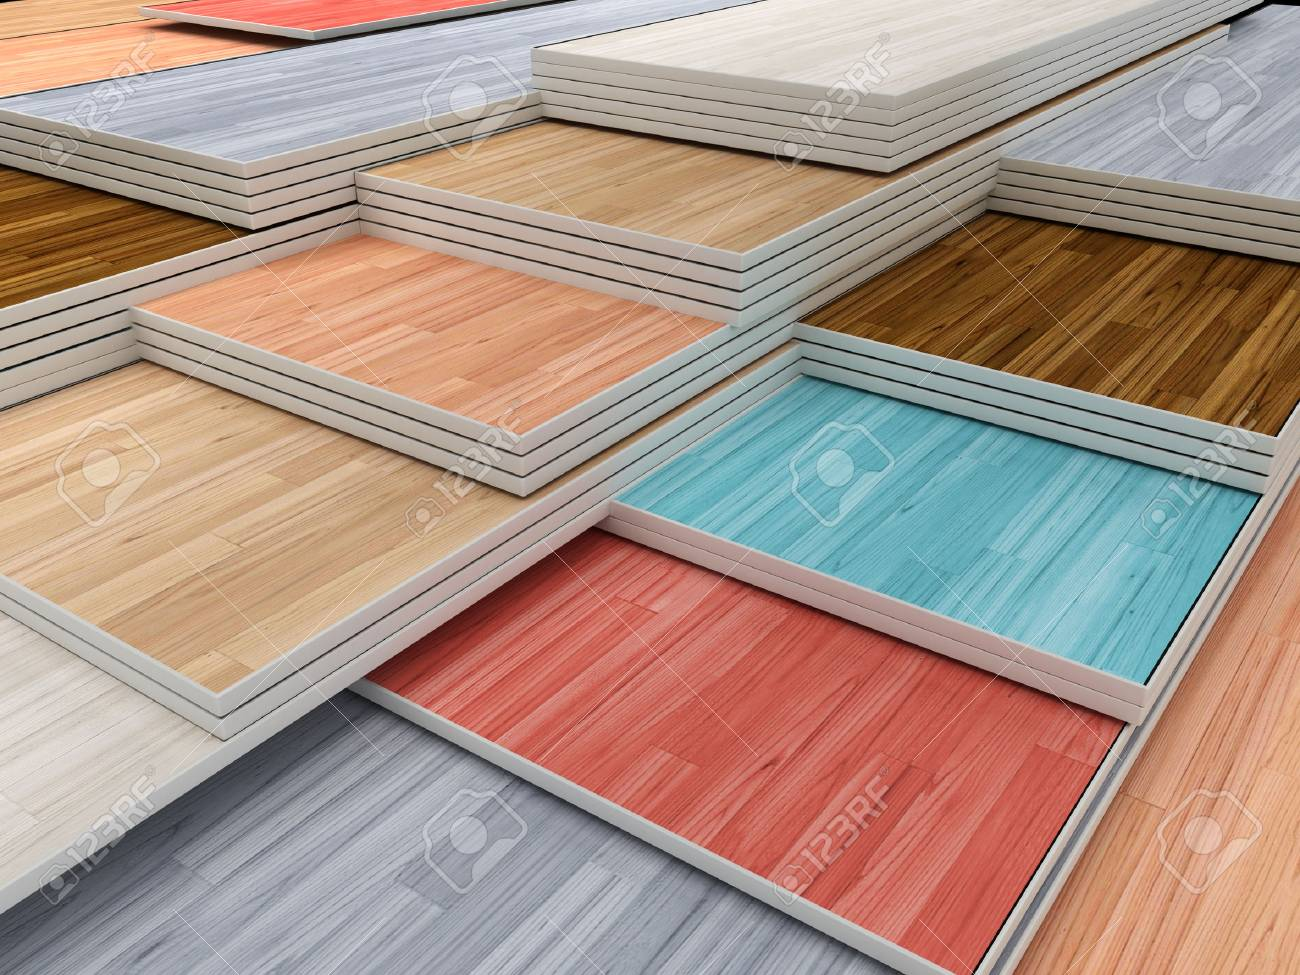 Multi Colored Parquet Flooring Boards With Various Textures Stack Stock Photo 55619213